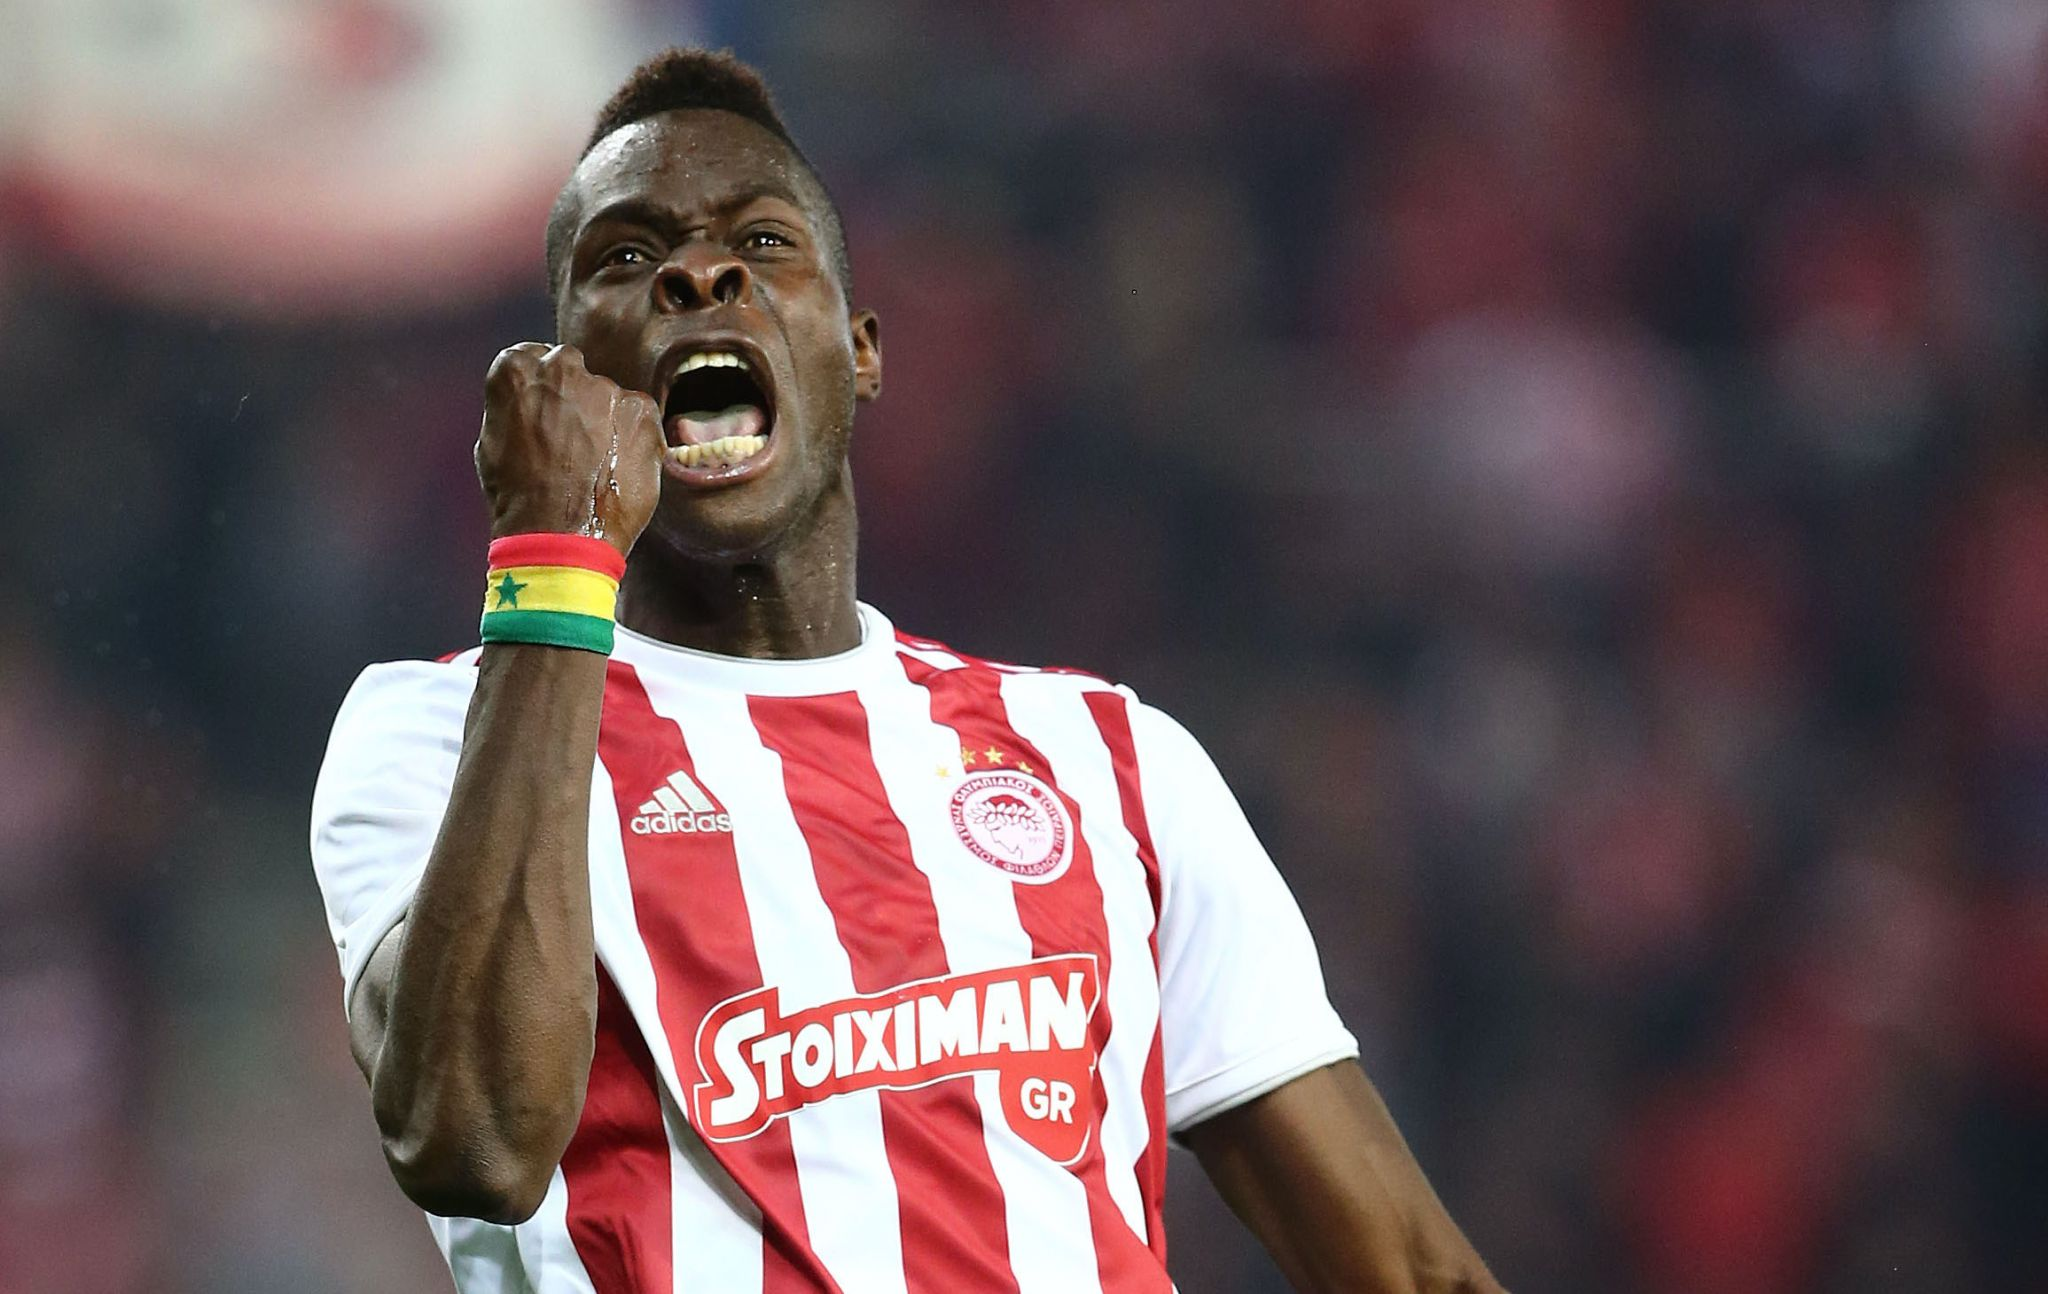 """Cisse: """"I dream of winning titles with Olympiacos"""""""